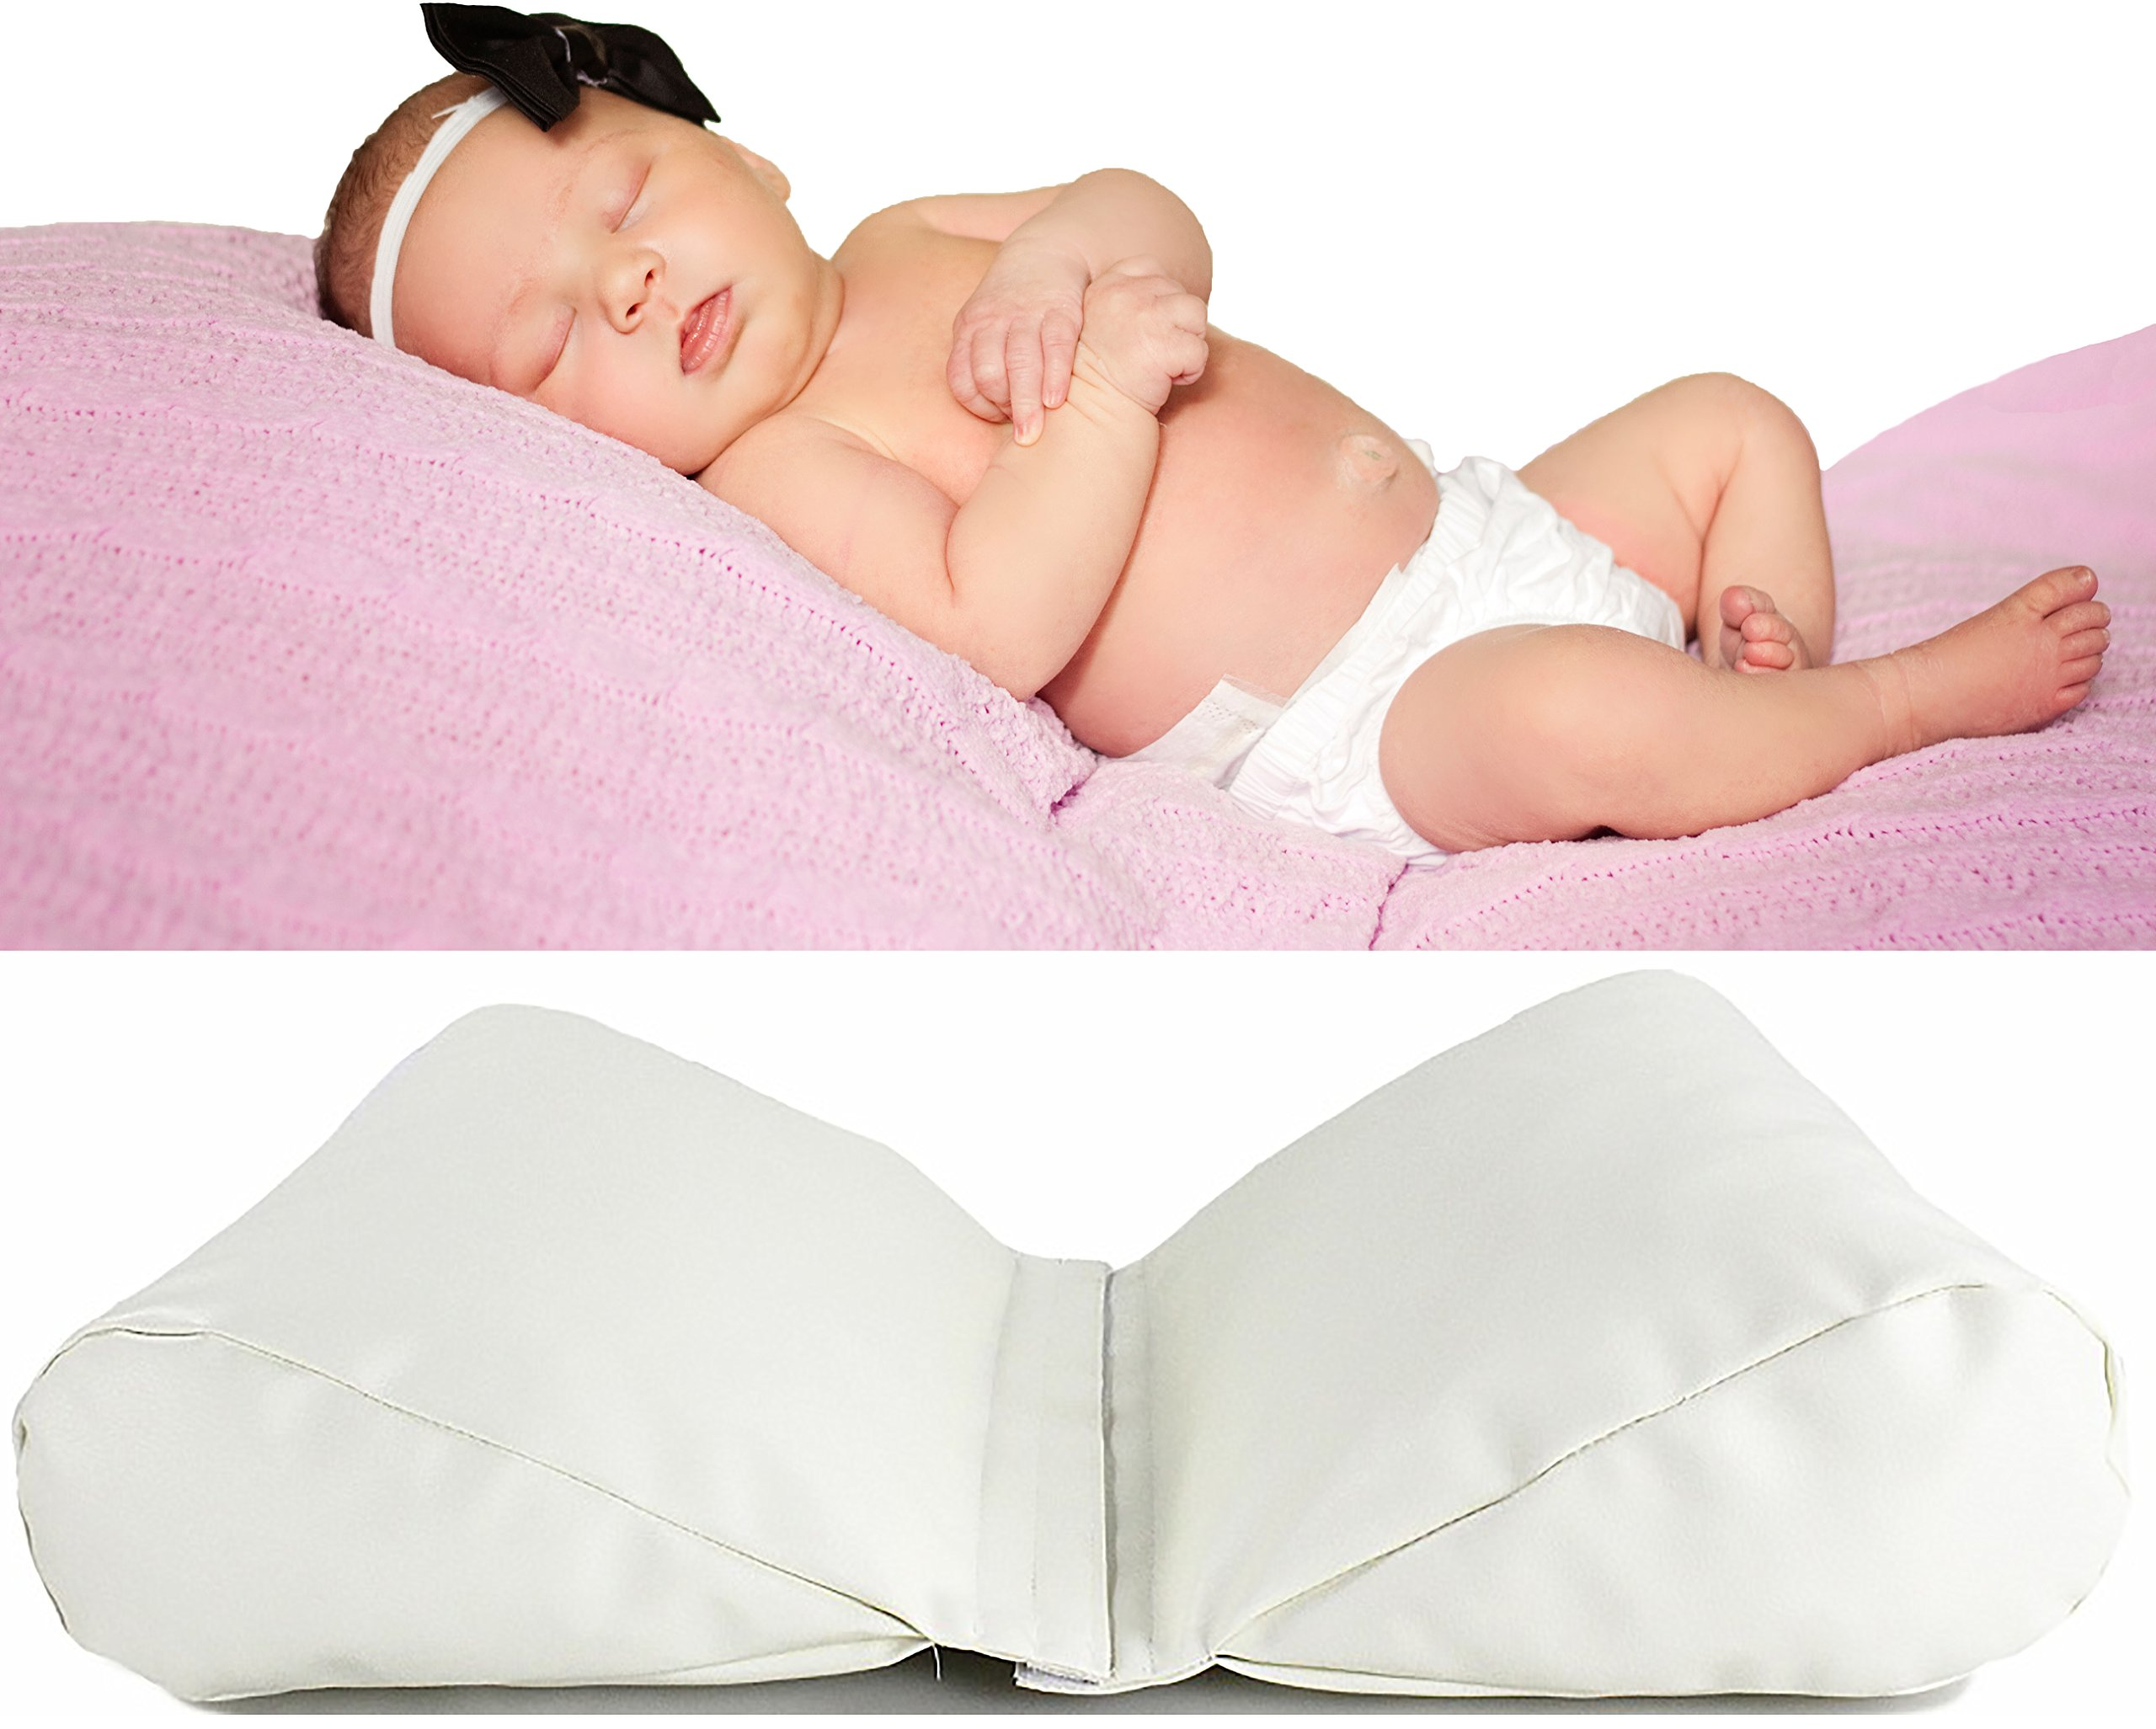 BABY CC Newborn Photography Butterfly Pillow - 2 Set Posing Props for Infant Boy and Girl Photoshoot - Wedges to Support Position - Ebook with Photo Shoot Tips